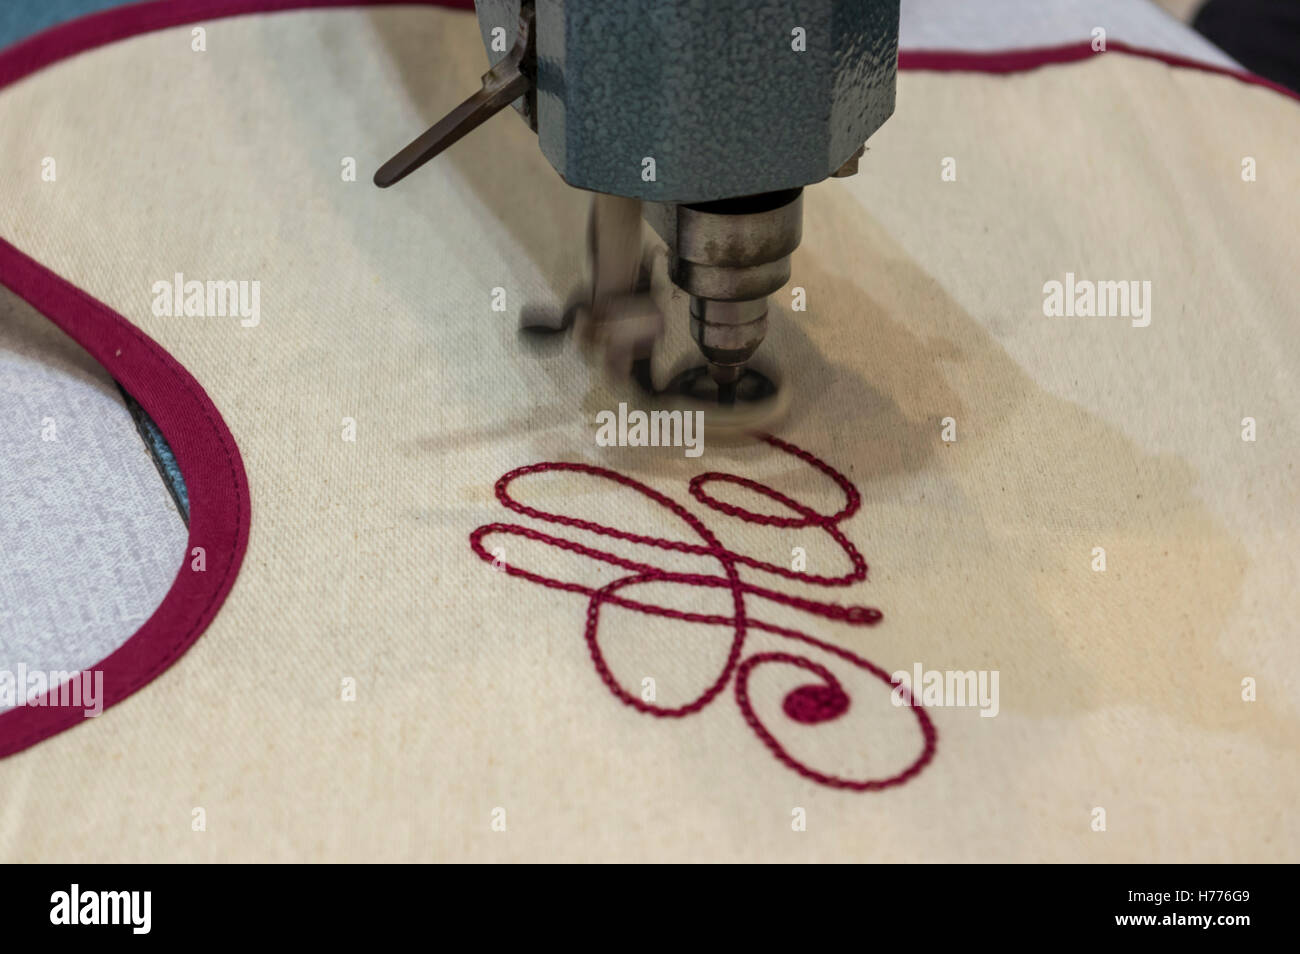 Embroidery of a name in script typeface using a stitching machine. Motion blur of the machine foot. - Stock Image